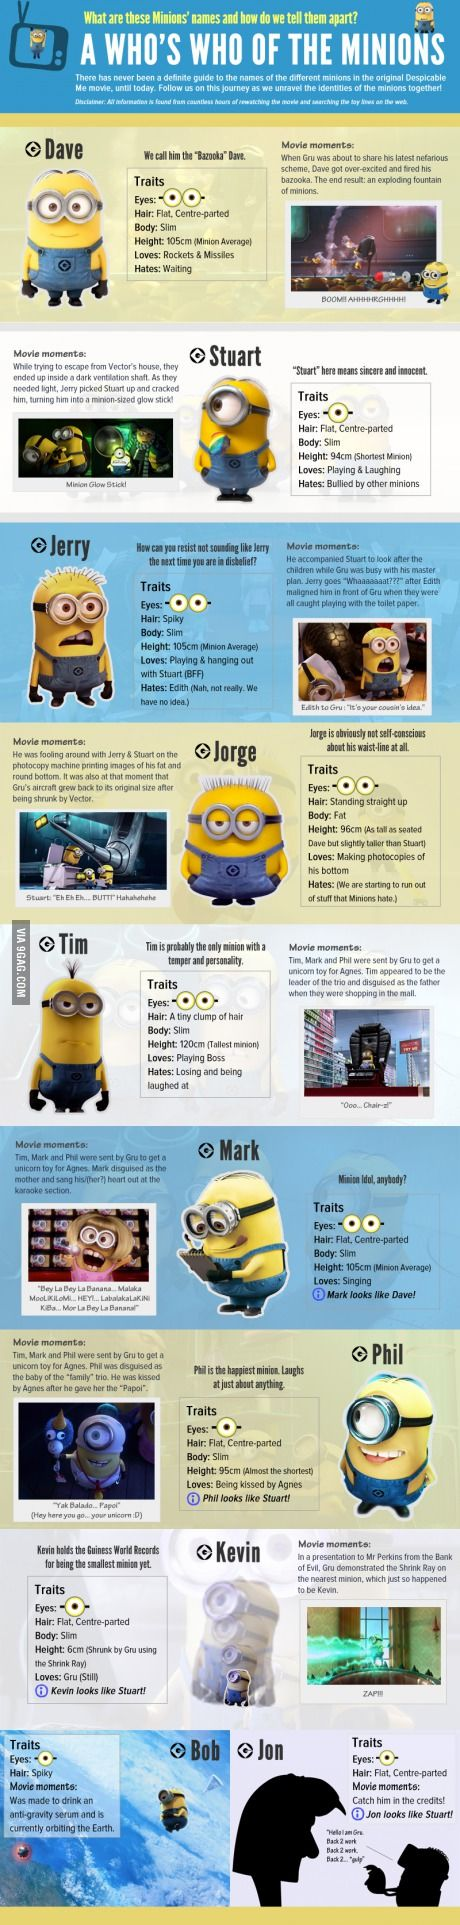 Know your minions.